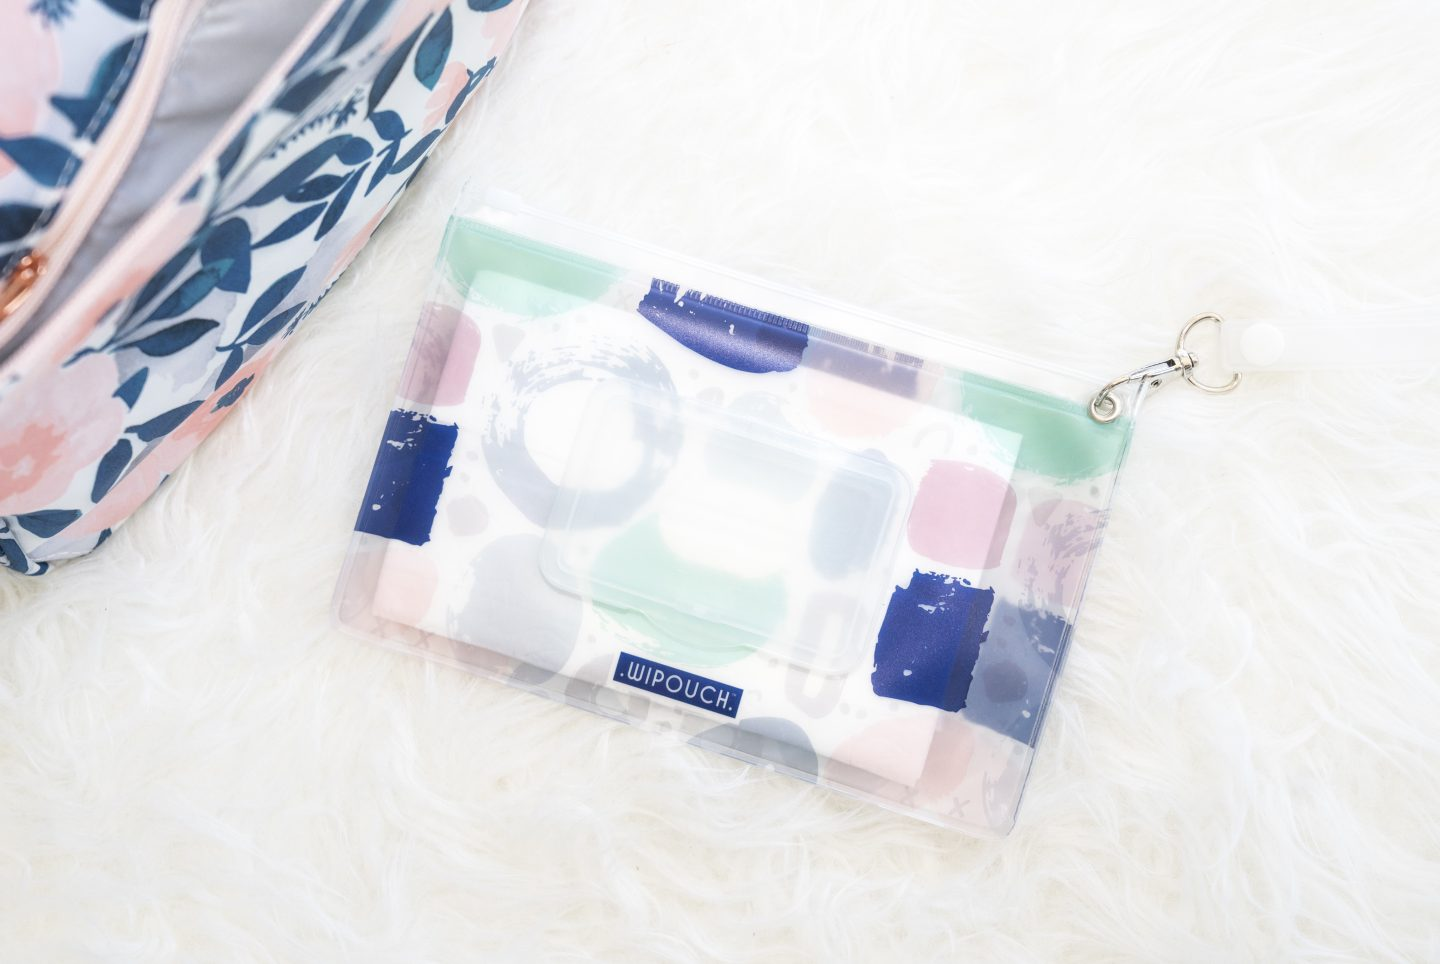 Jujube Be Sassy Whimsical Watercolor wipouch